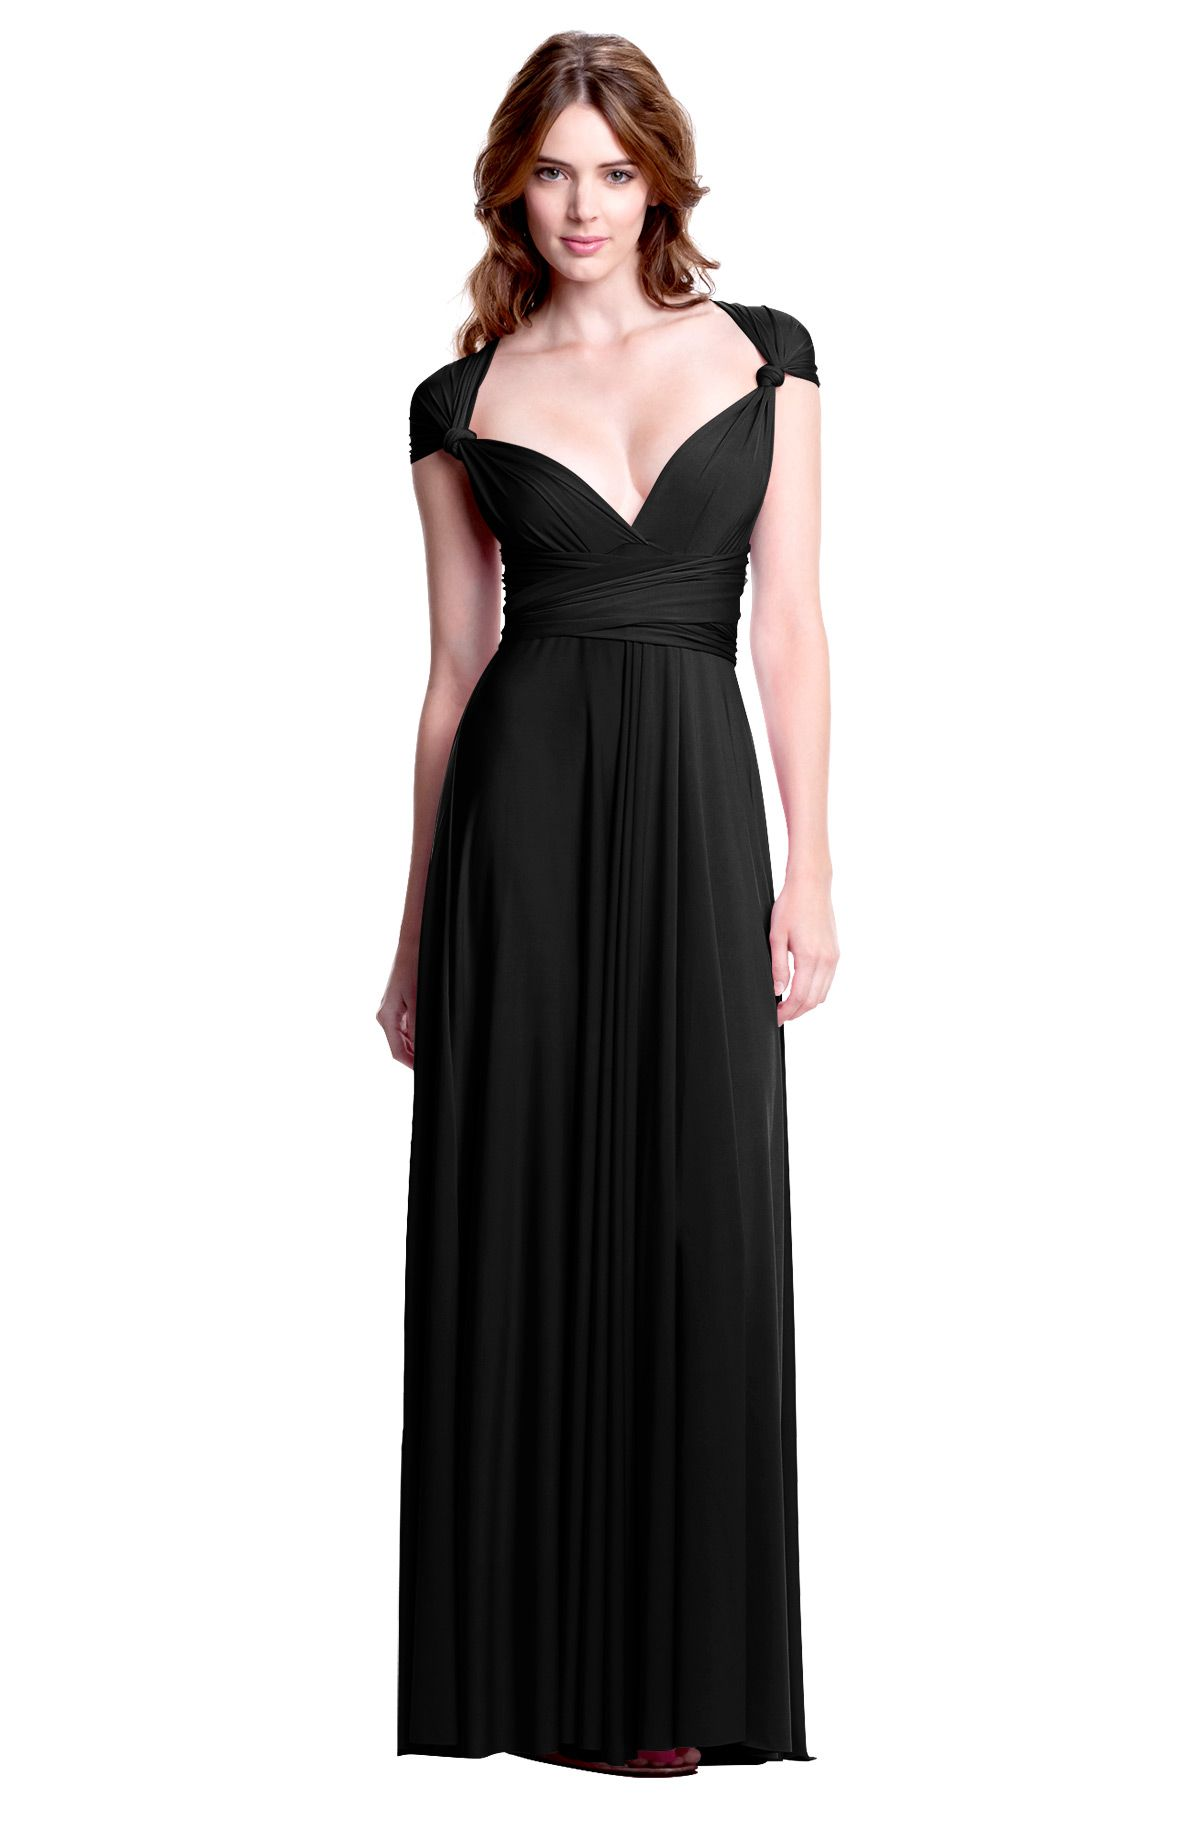 Sakura night black midi convertible dress henkaa fashion